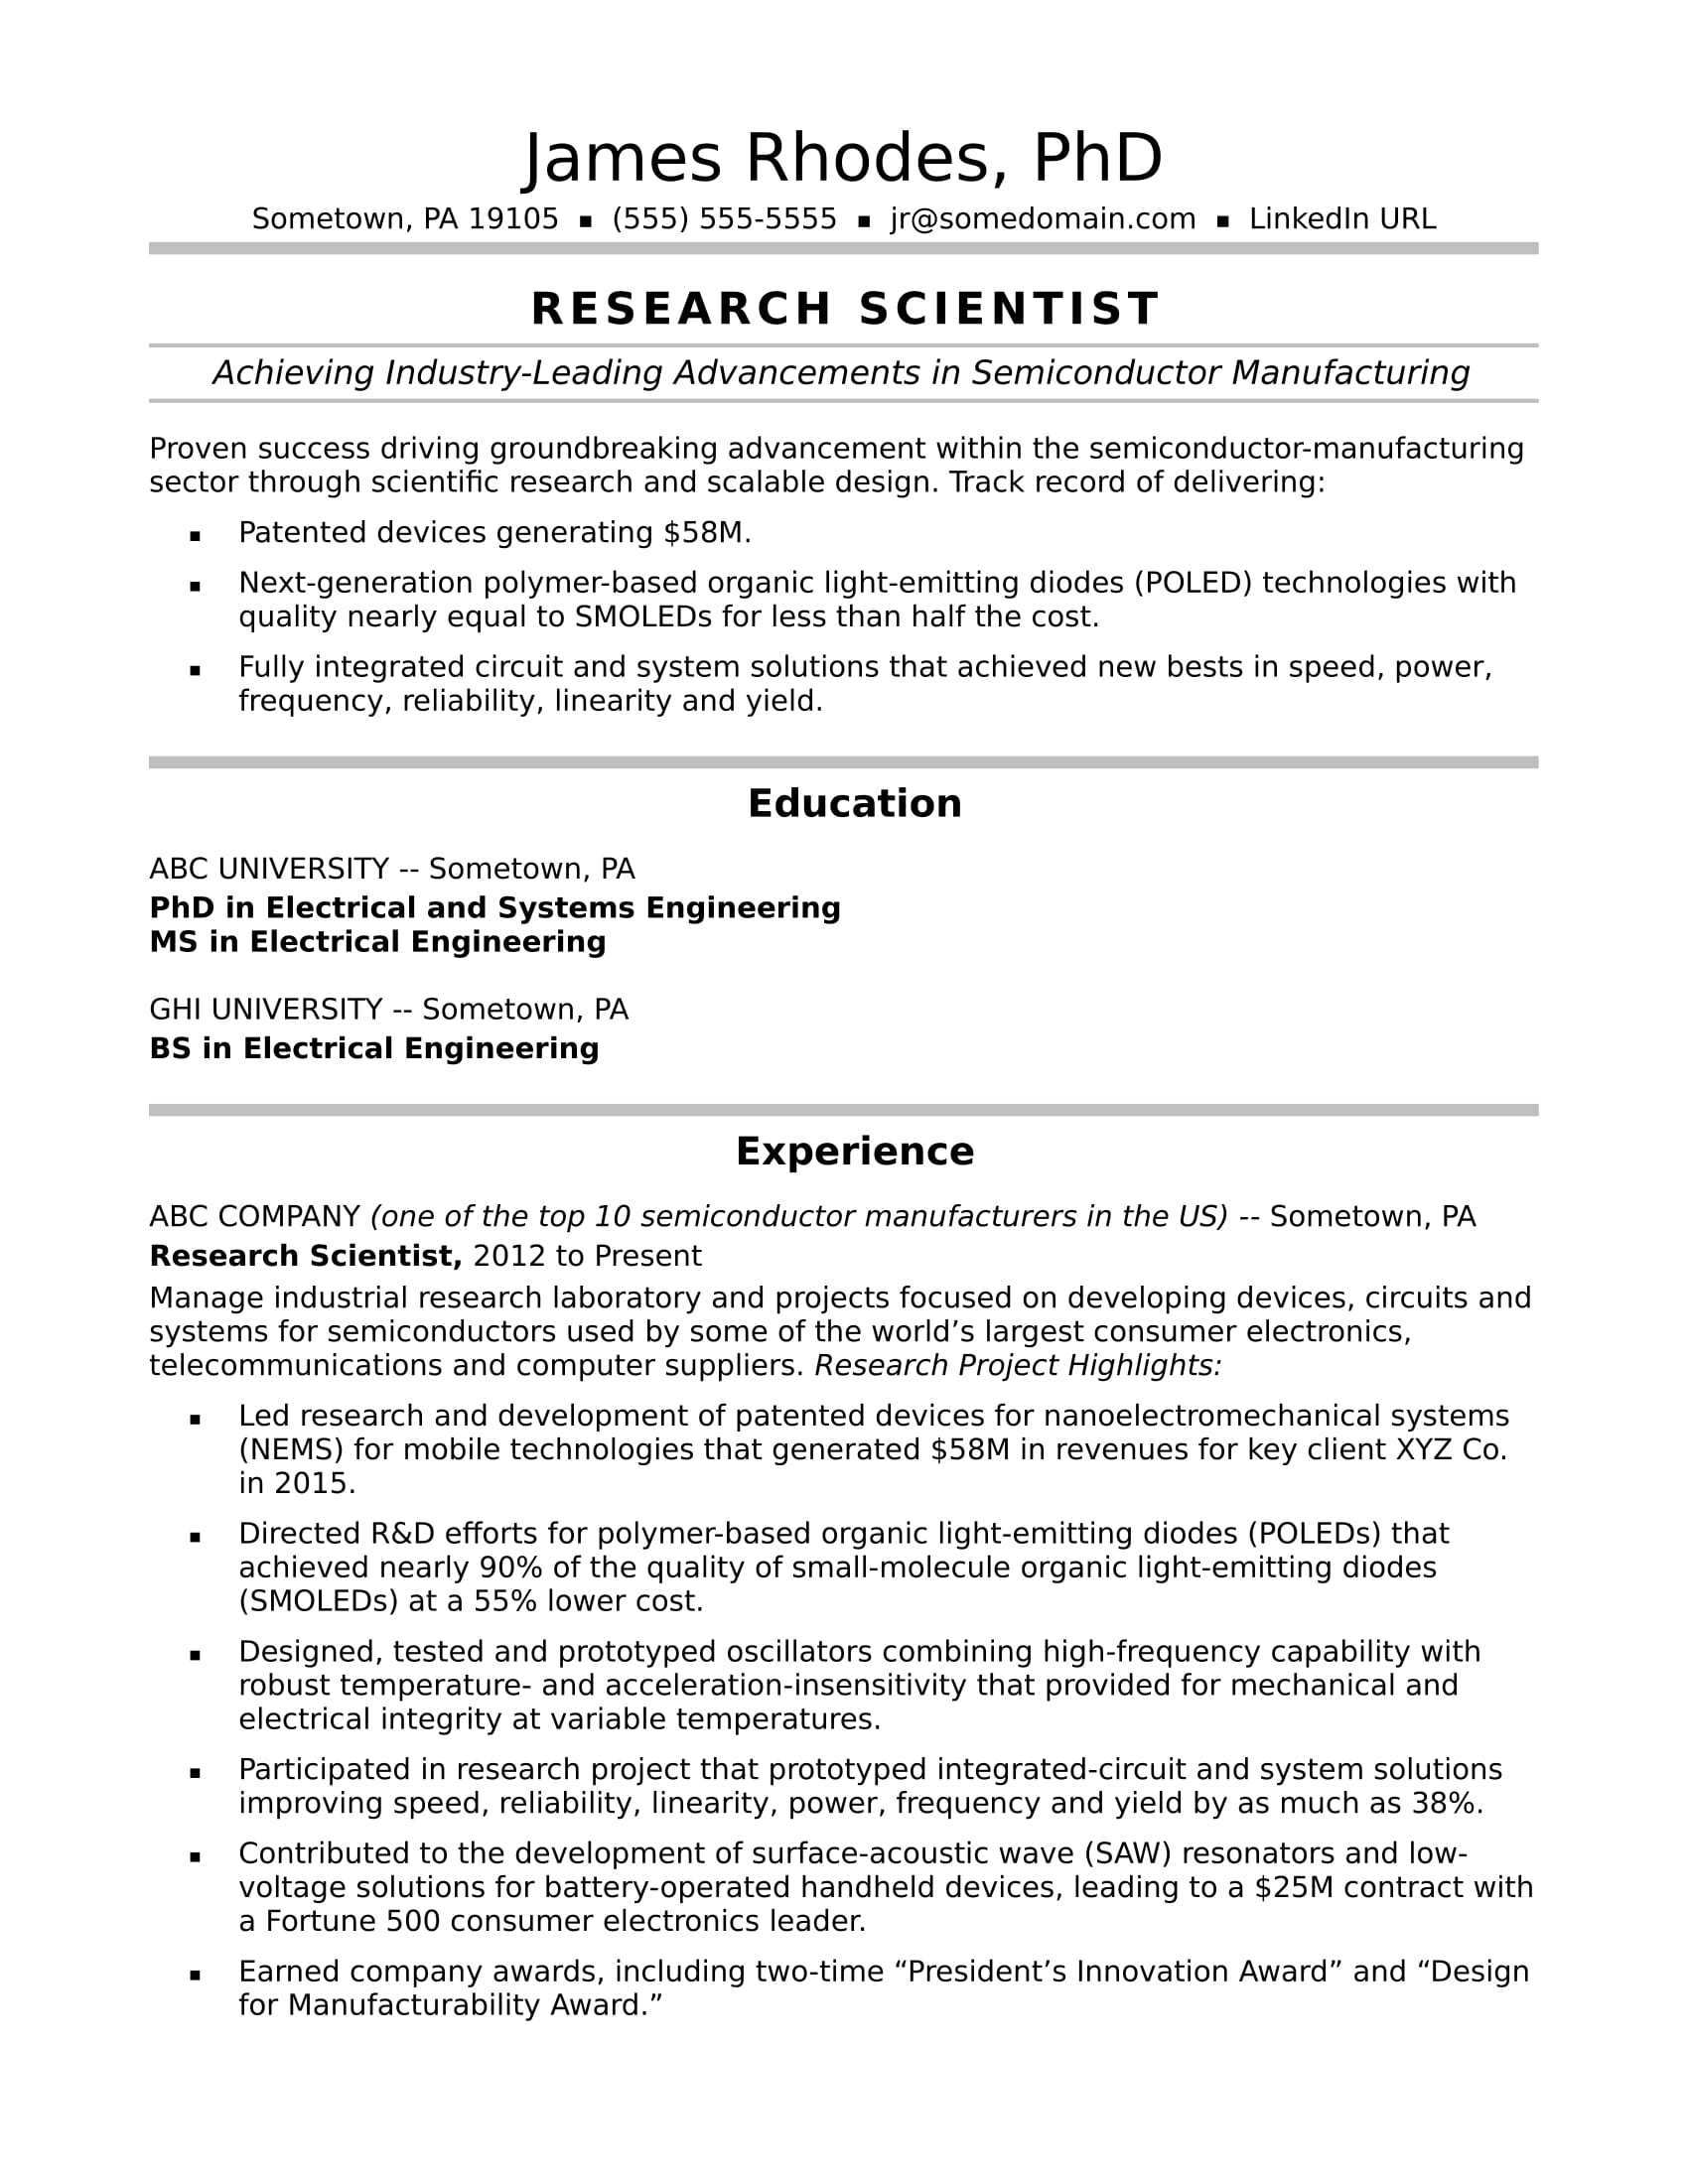 research scientist resume sample monster with experience midlevel format for hospitality Resume Resume With Research Experience